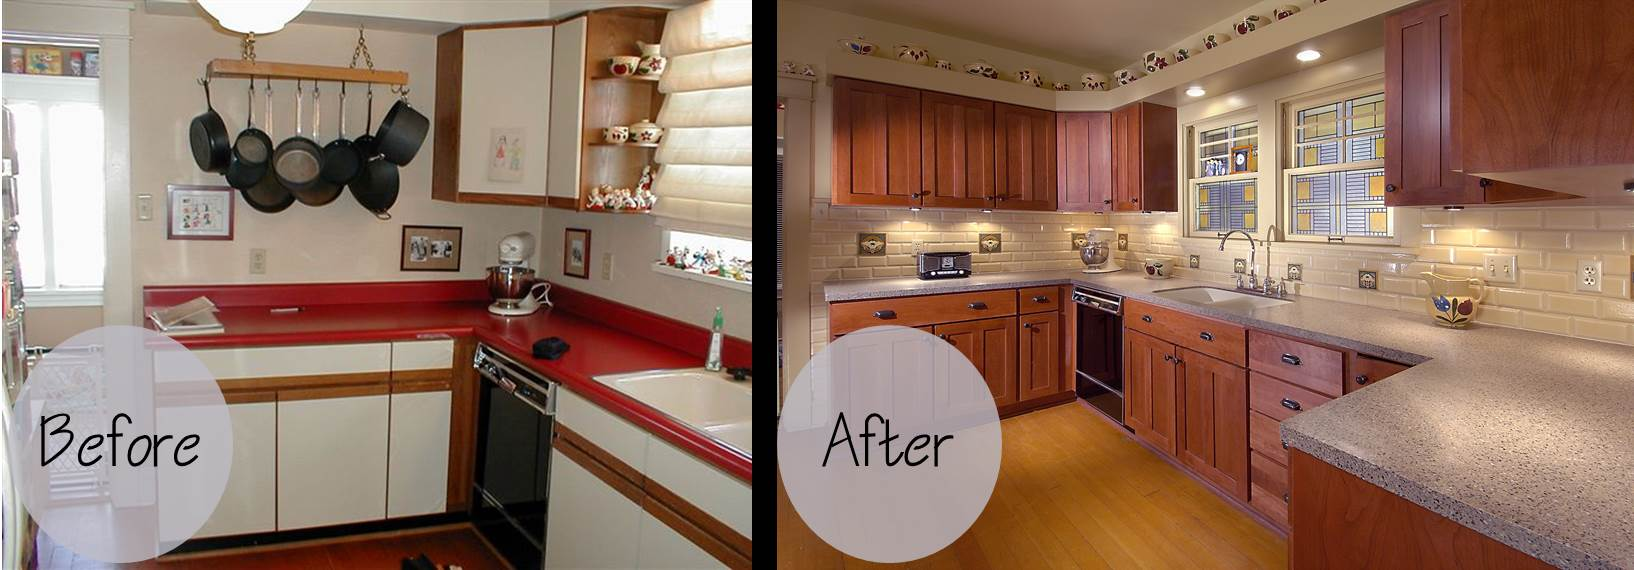 replacing kitchen cabinet doors before and after cabinet refacing bucks county pa kitchen cabinet 25482